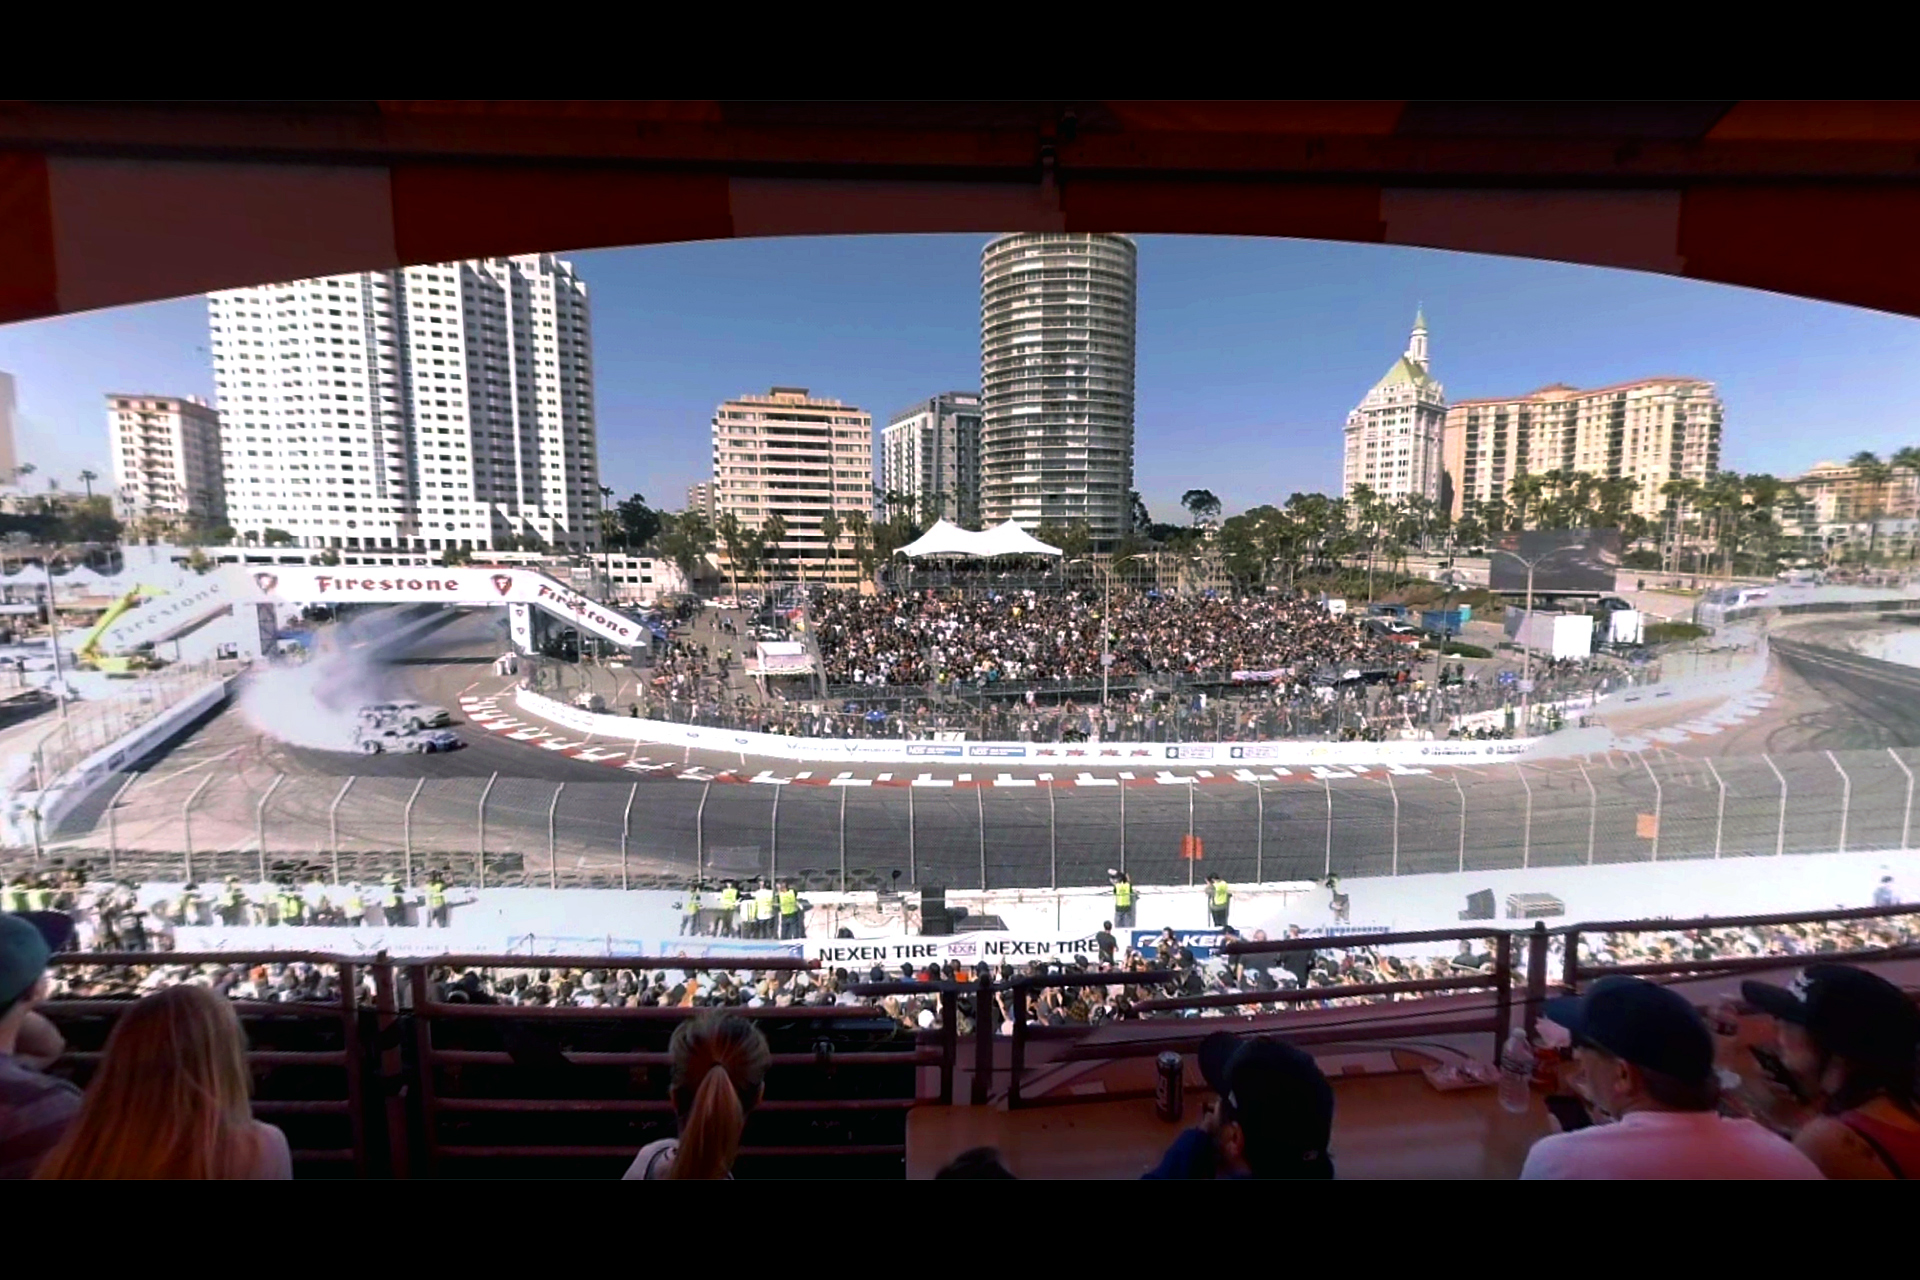 A Different View Of FDLB